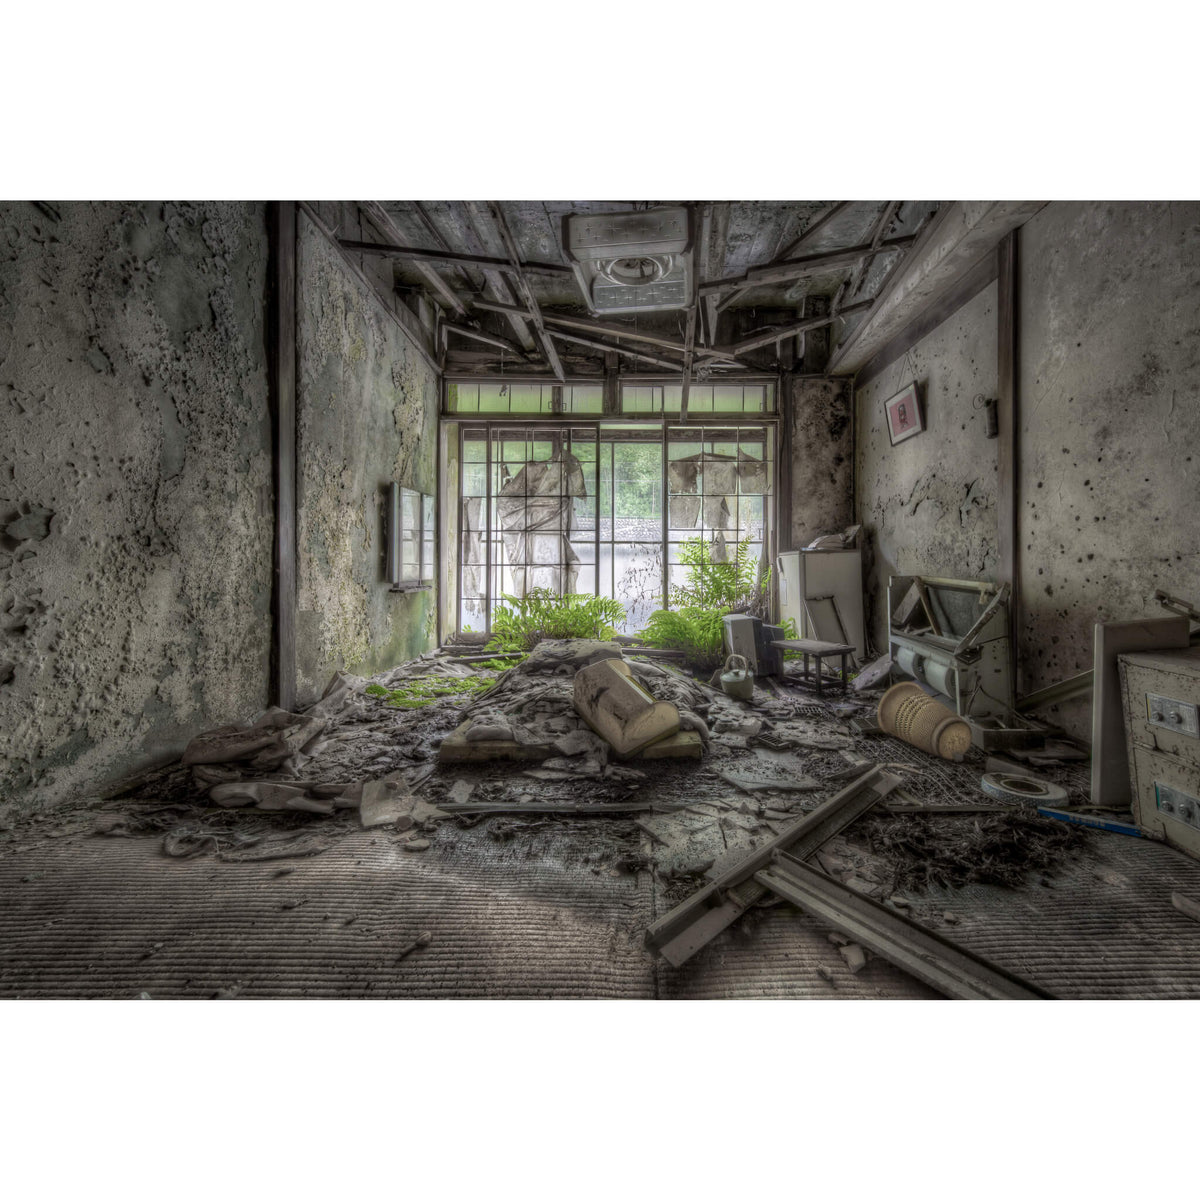 Entry Level Guest Room | Kinugawa Kan Fine Art Print - Lost Collective Shop